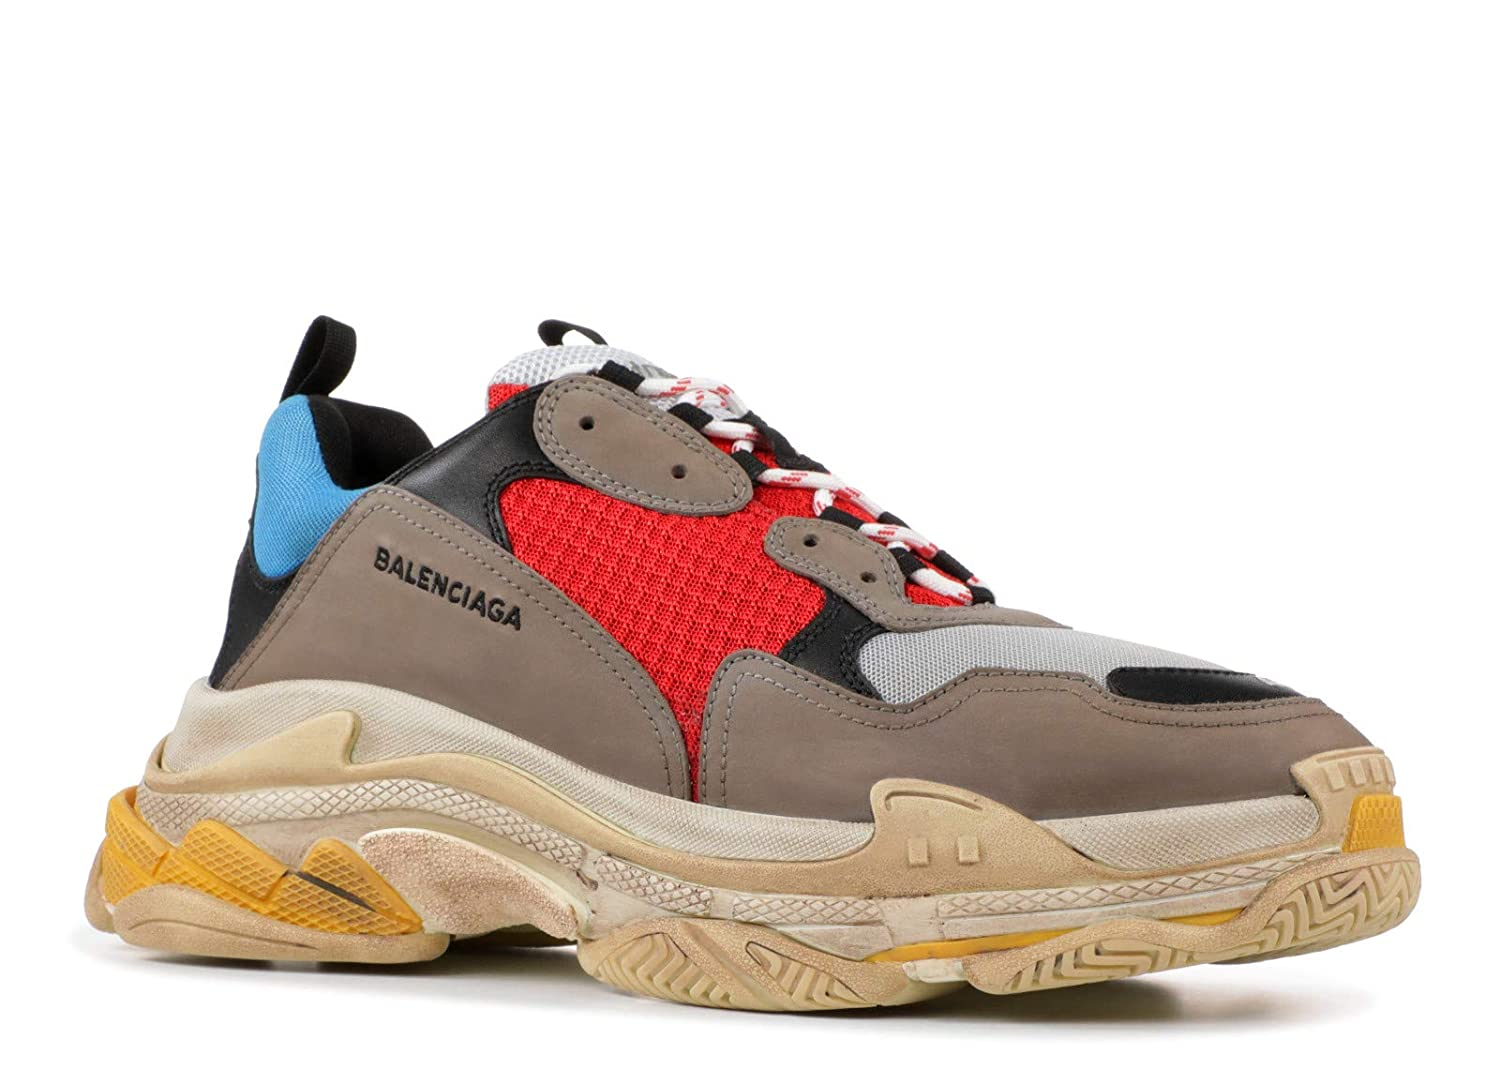 Buy Balenciaga Triple S Sneakers Grey Red Running Shoes For Men 41 Euro At Amazon In